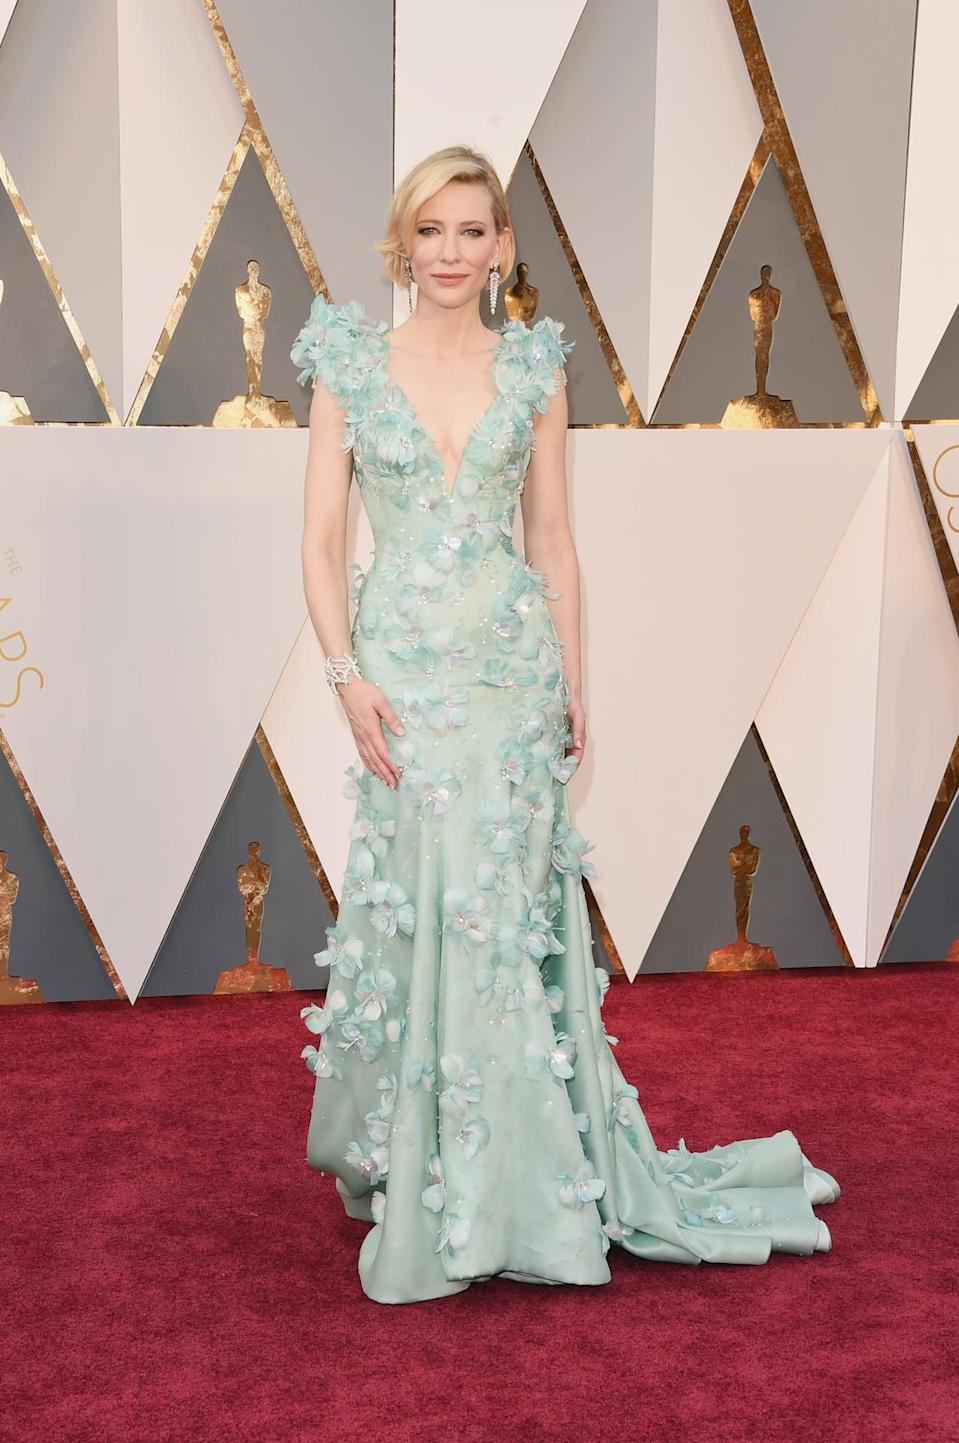 <p>Unfortunately, Cate Blanchett climaxed in the fashion department at the Spirit Awards with a gorgeous Gucci gown. The actress, nominated for her role in <i>Carol, </i>started her downwards path at the Oscars in a seafoam green Armani Priveé dress covered in flowers. <i><i>(Photo: Getty Images)</i></i></p>